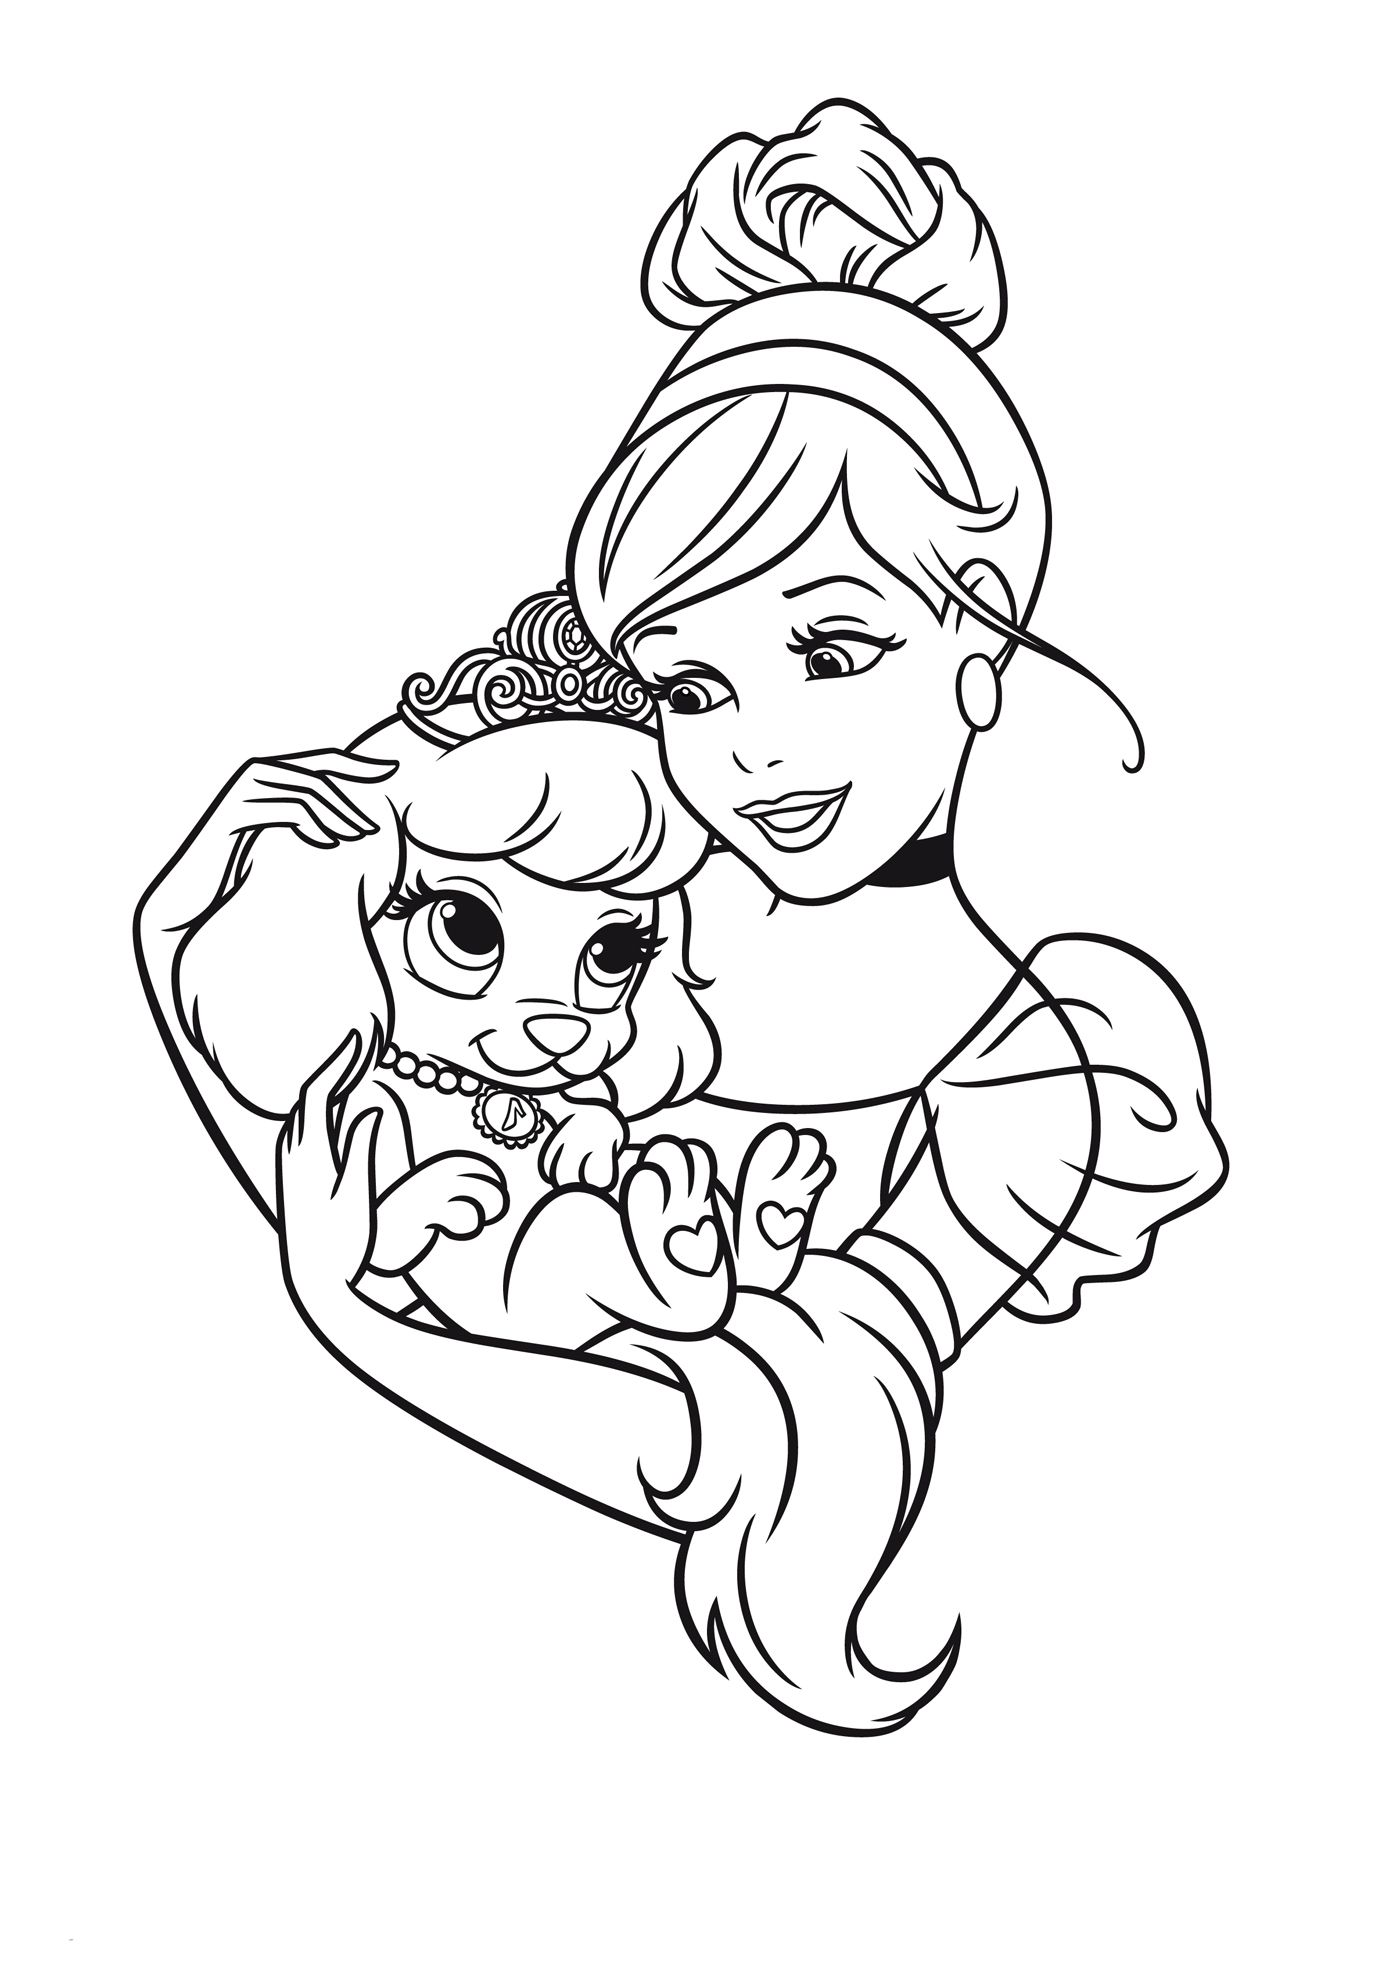 easy princess coloring pages - photo#10